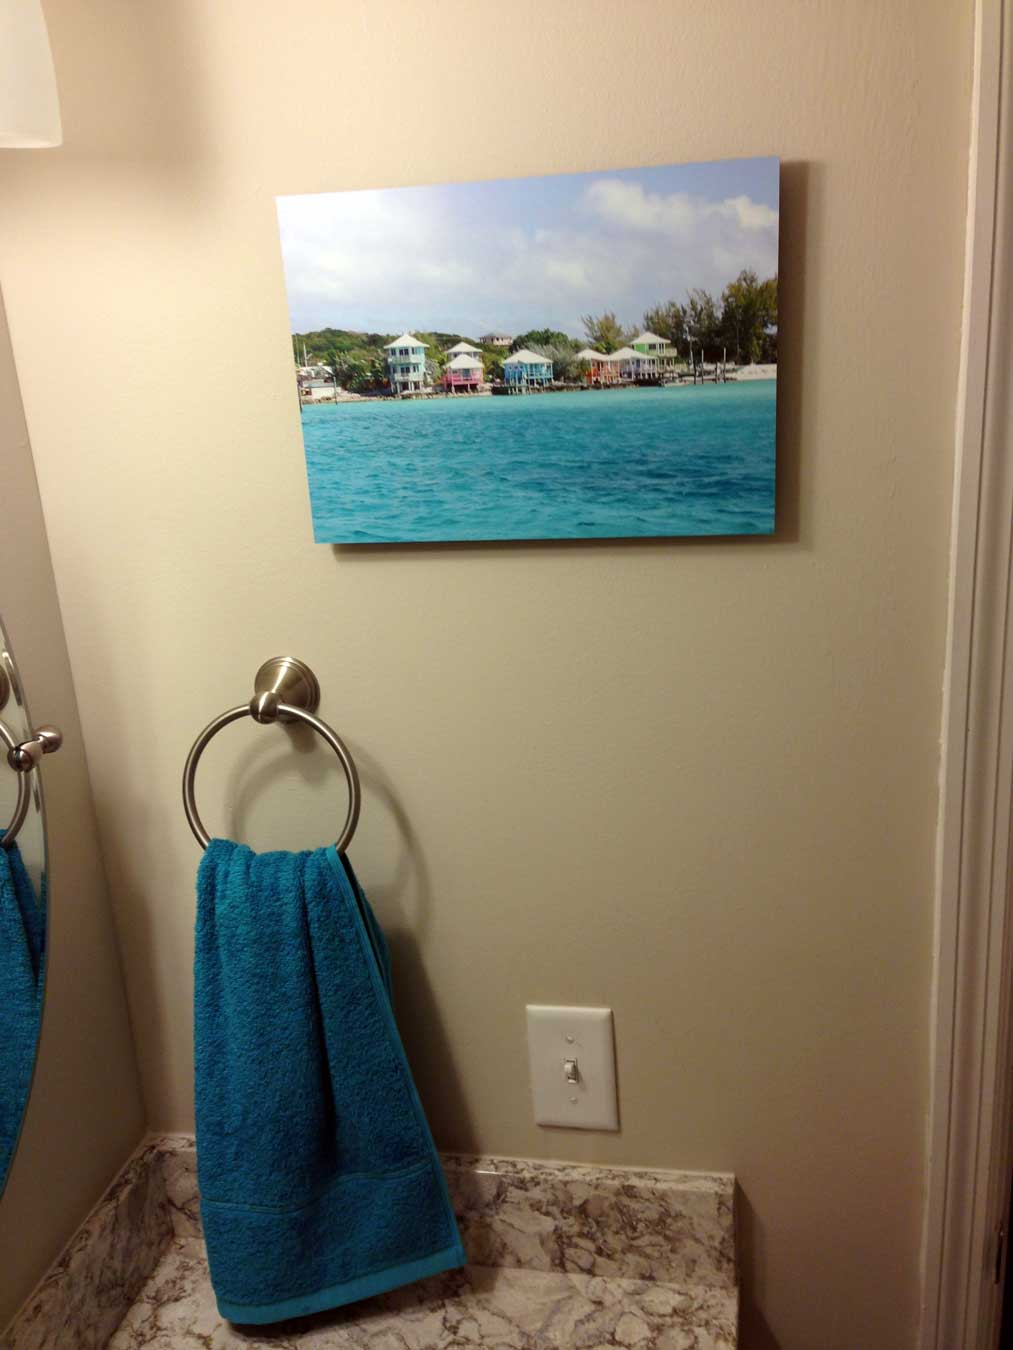 Aqua hand towel and a pic of Staniel Cay: Bahamas in the bathroom